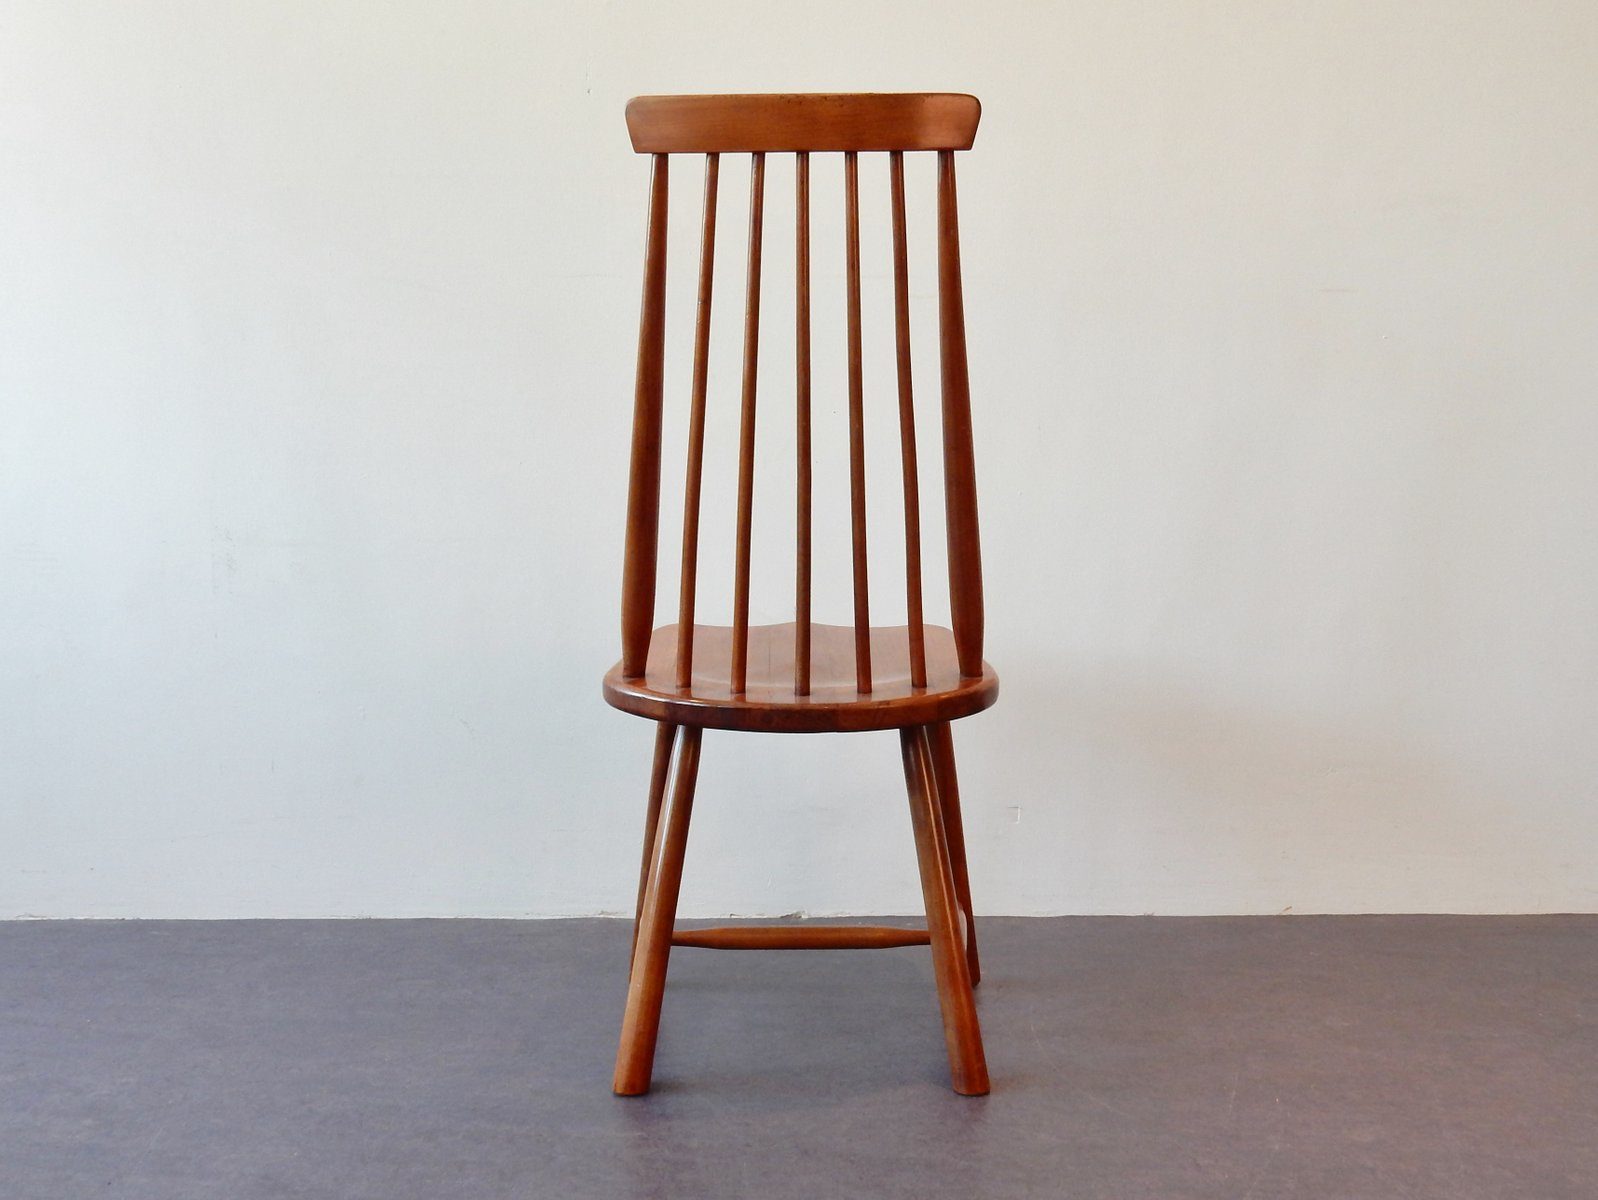 Vintage Solid Wooden Chairs Set Of 2 For Sale At Pamono